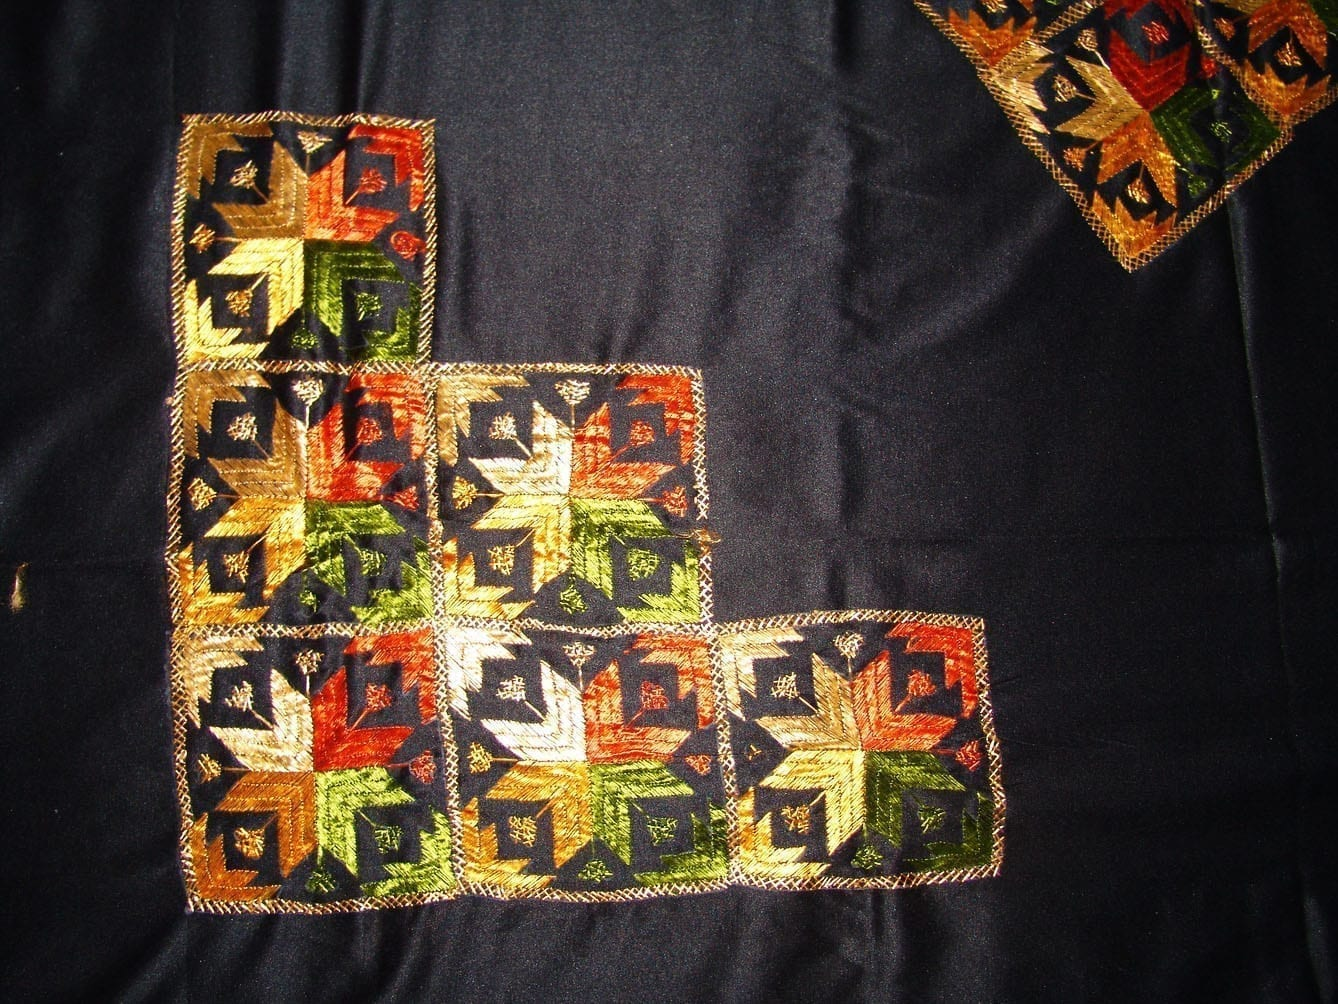 Glazed Cotton Black Phulkari Bed Cover Set Z0030 3